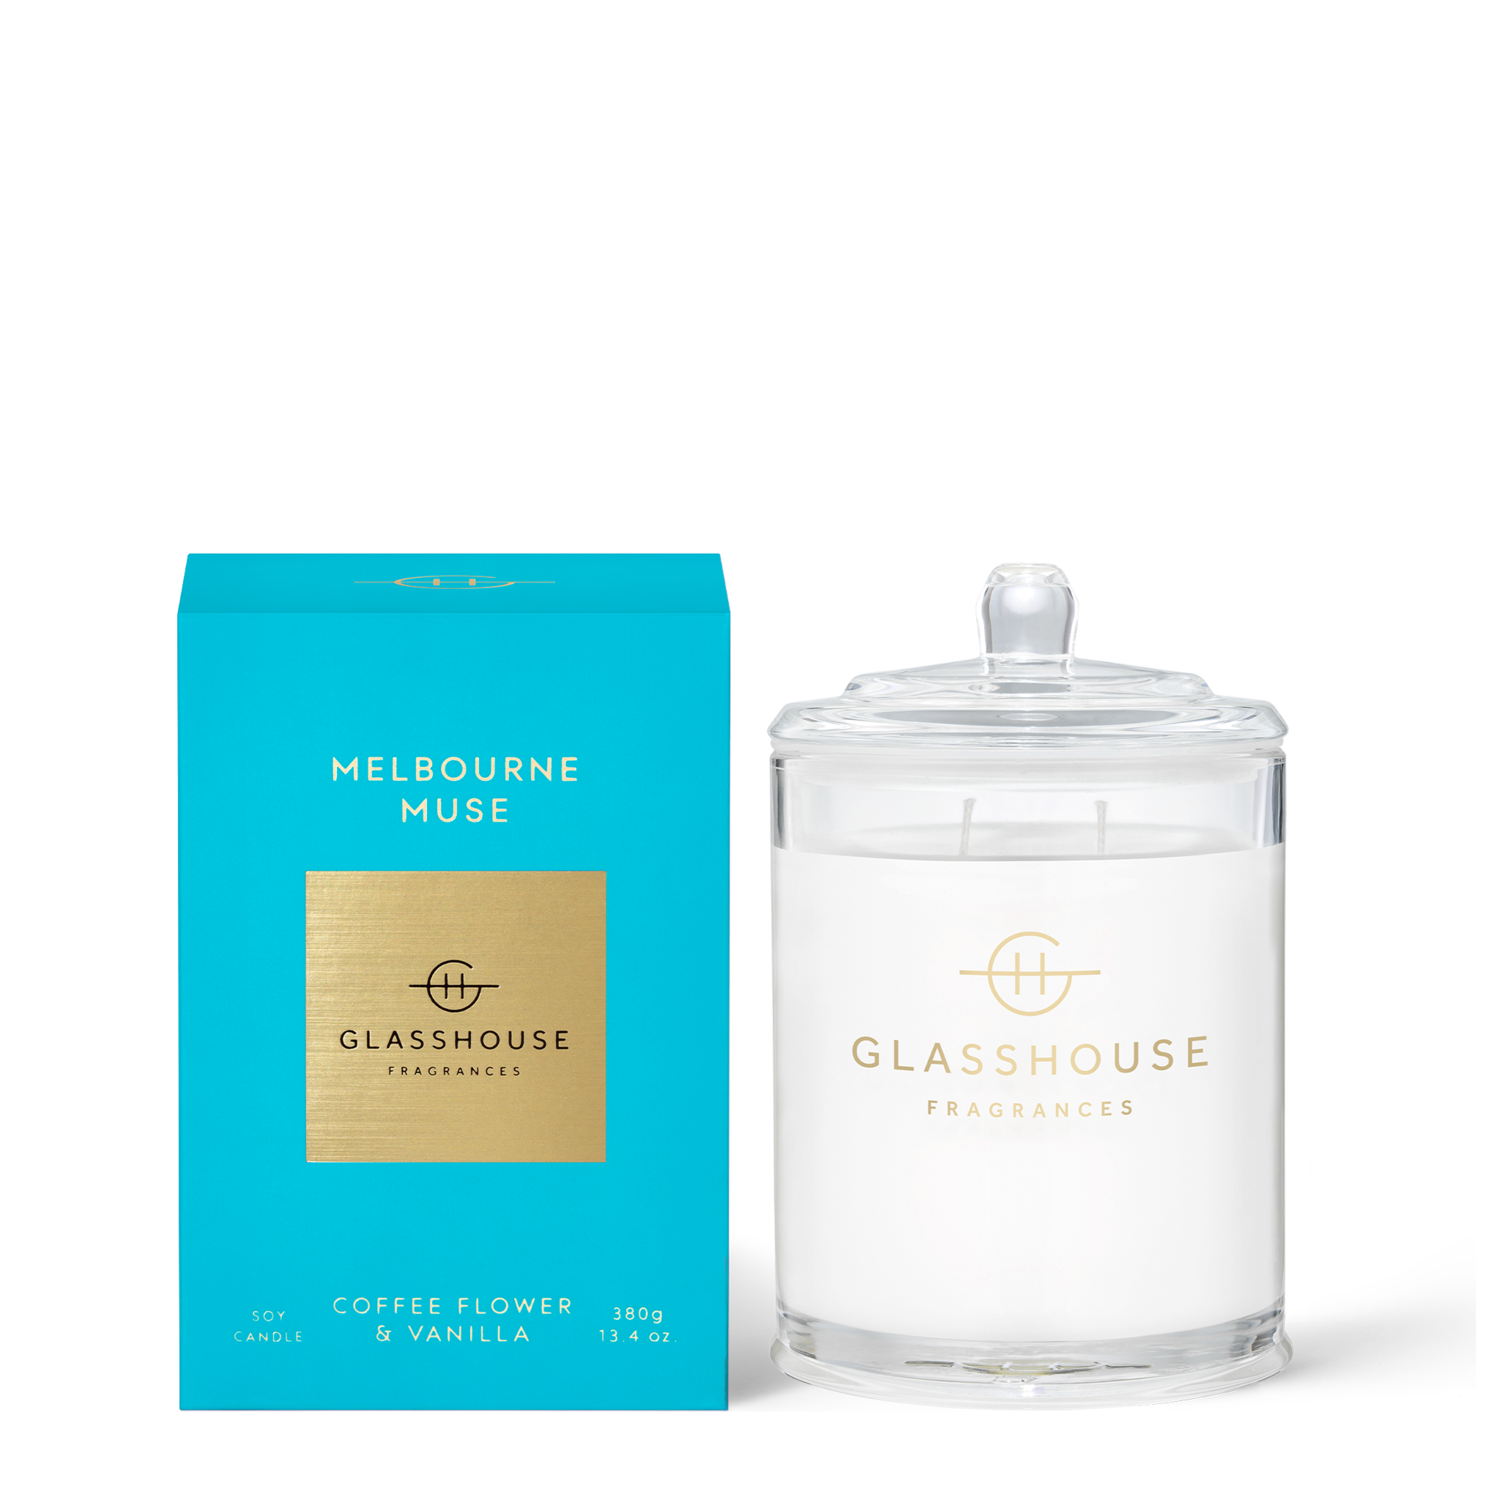 Melbourne Muse 380g